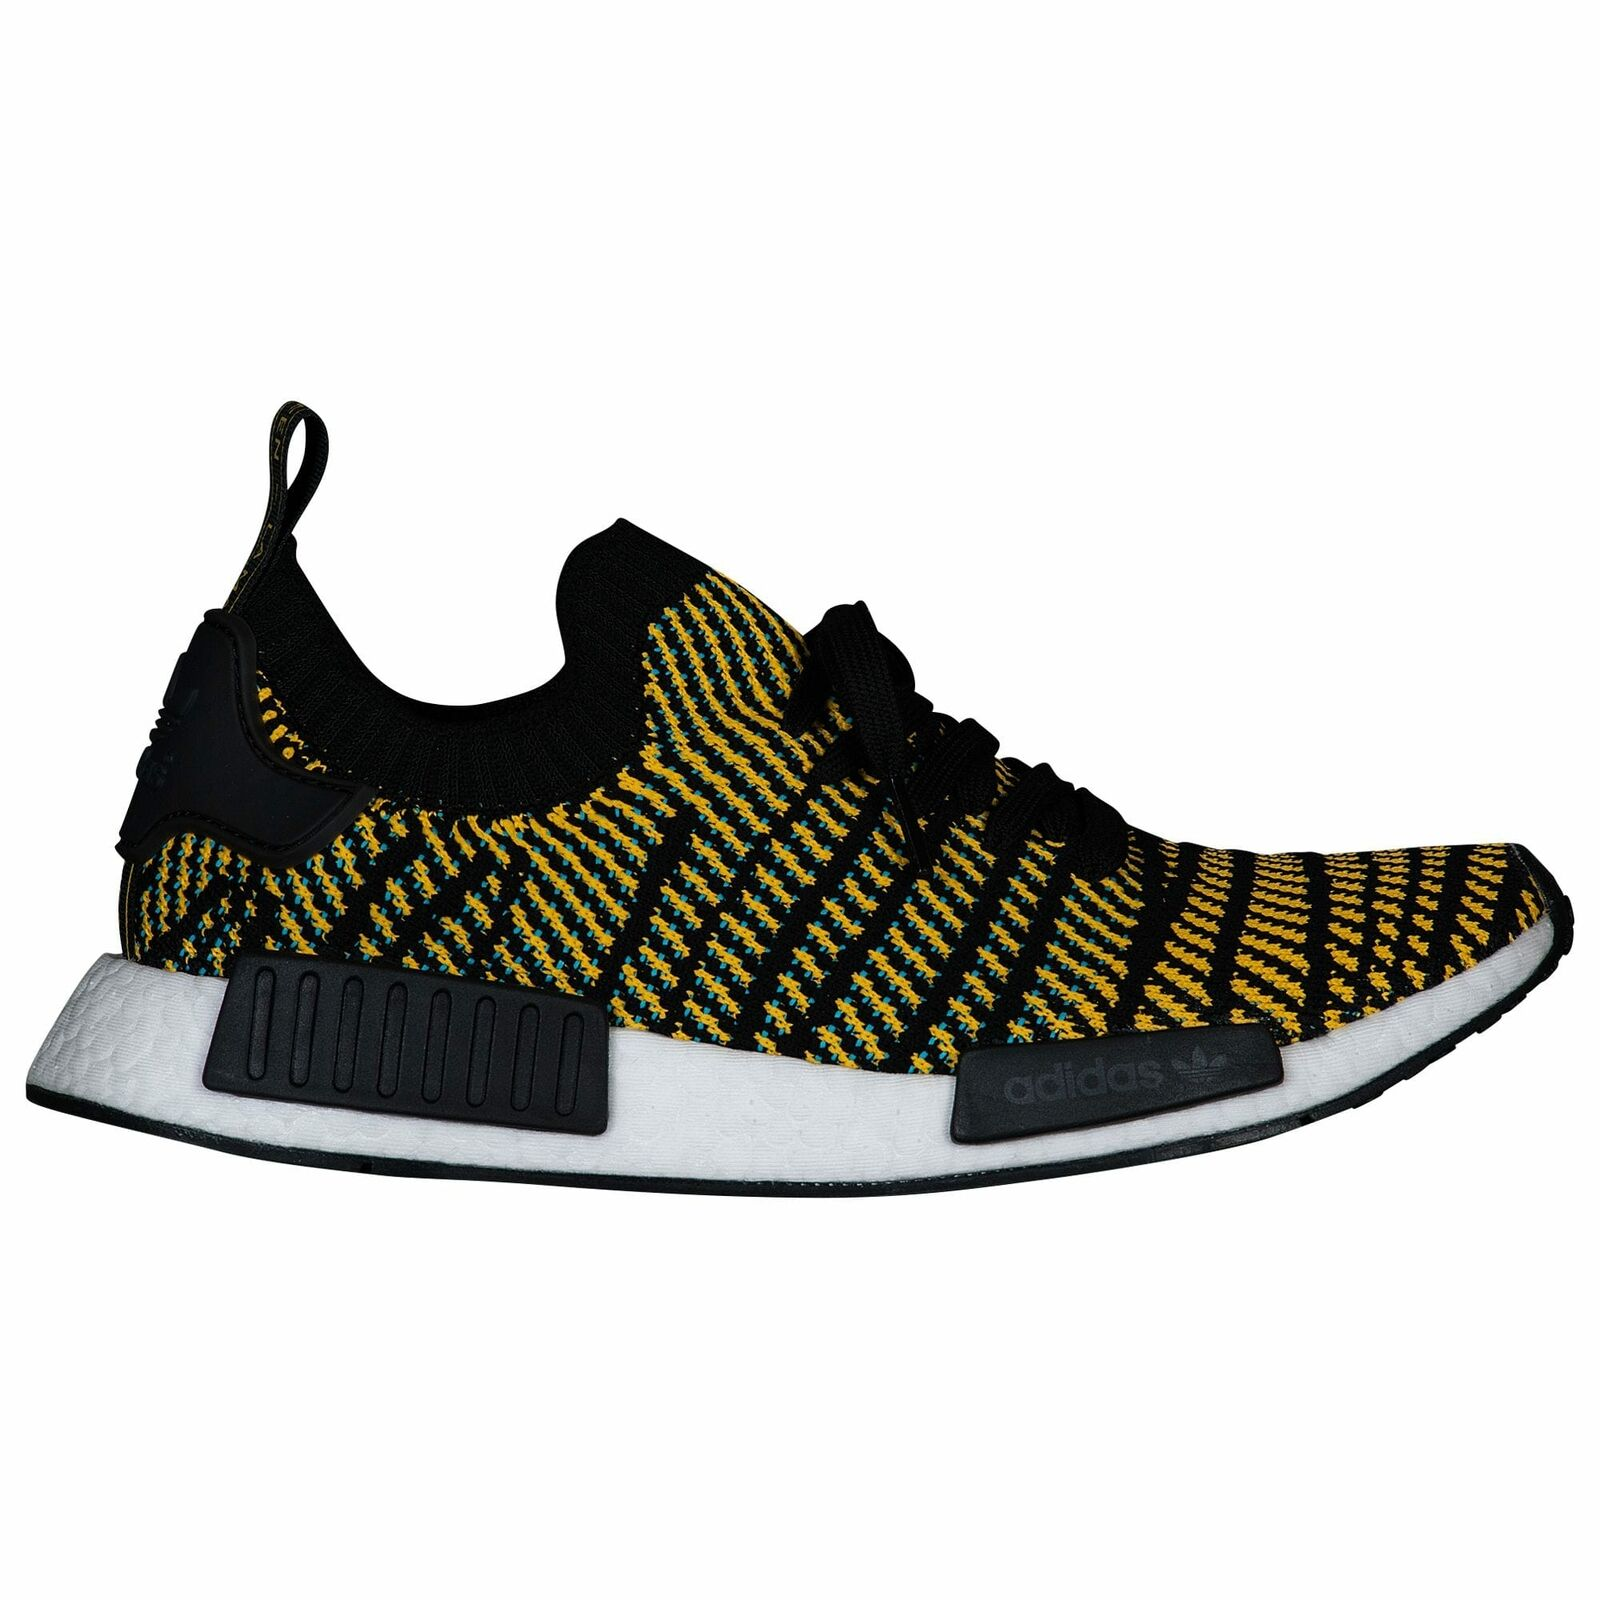 online store daf6f 106be adidas nmd r1 stlt pk yellow 4